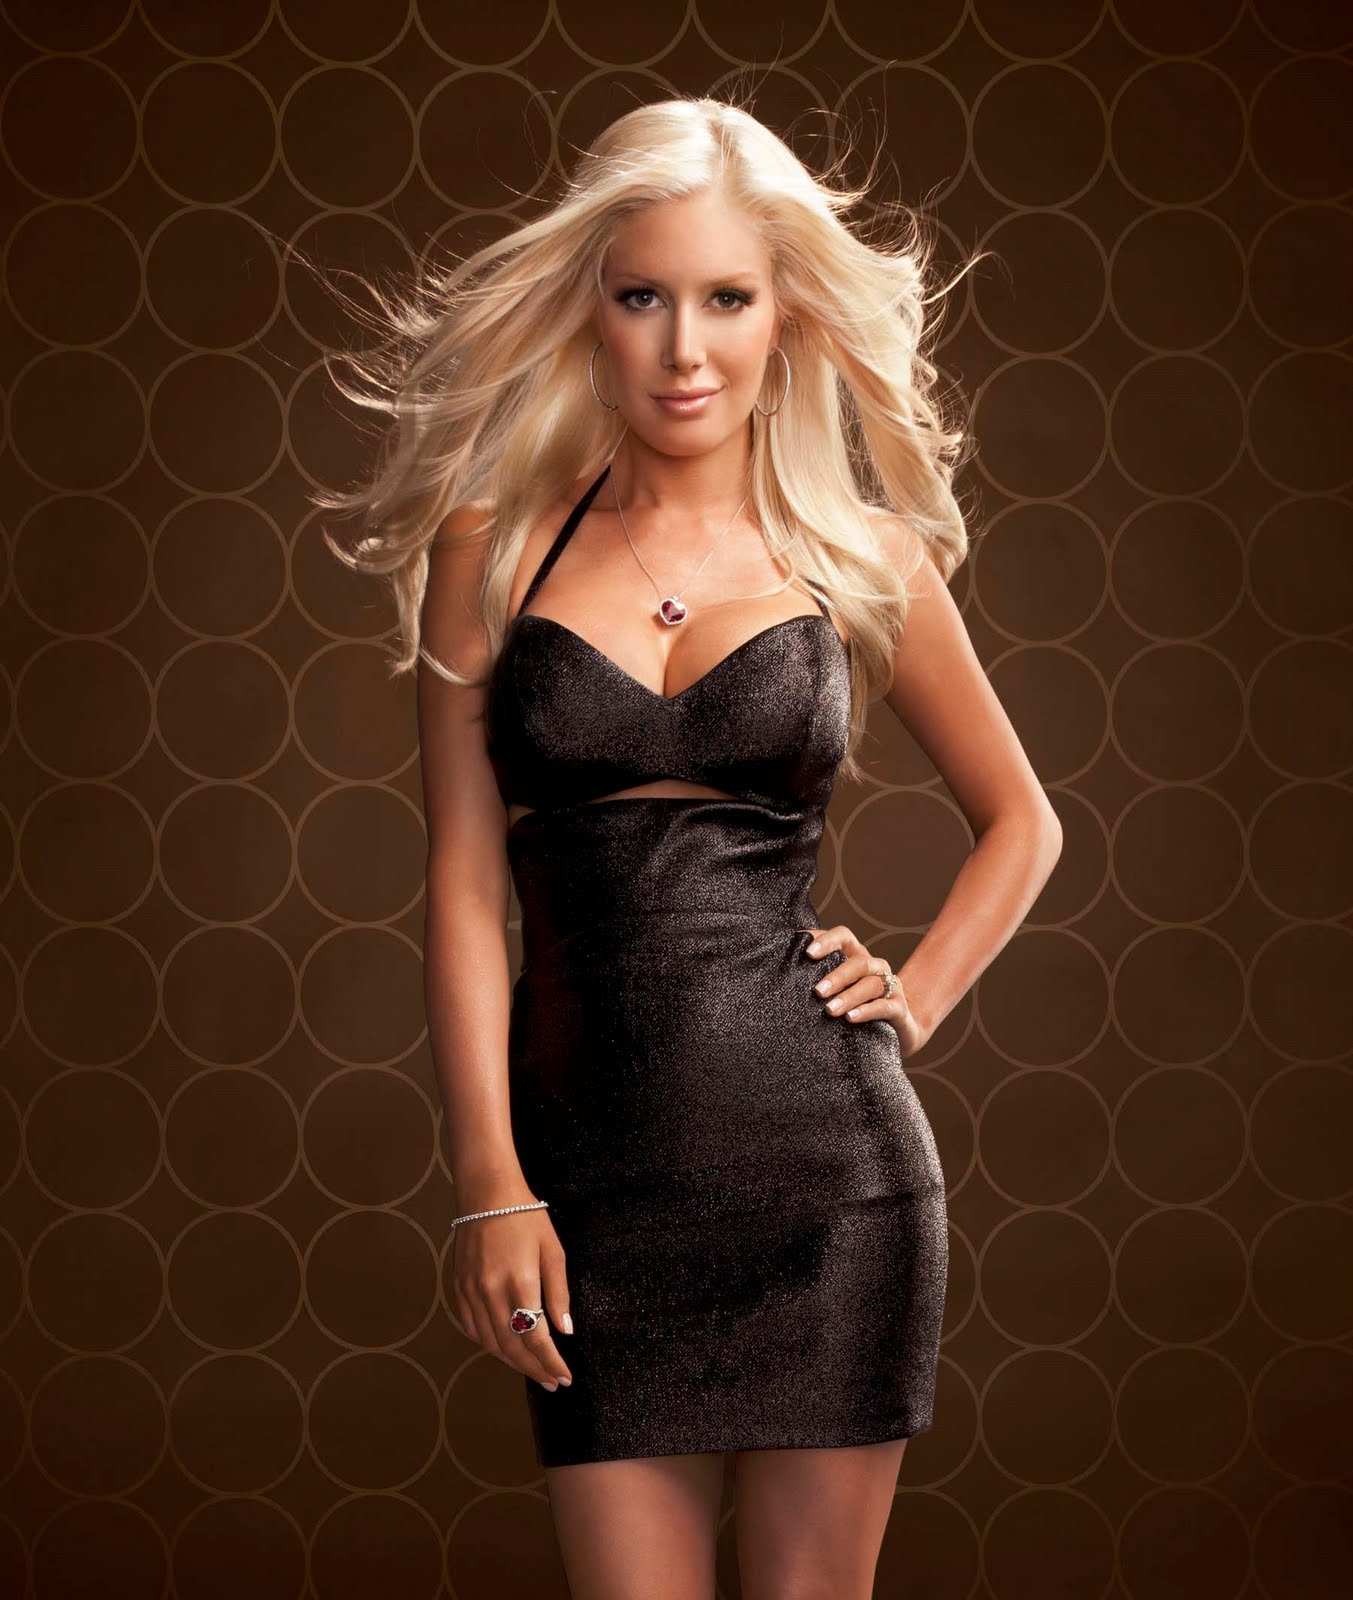 Heidi montag fashion mp3 YouTube-MP3.org agrees to shut down after being sued